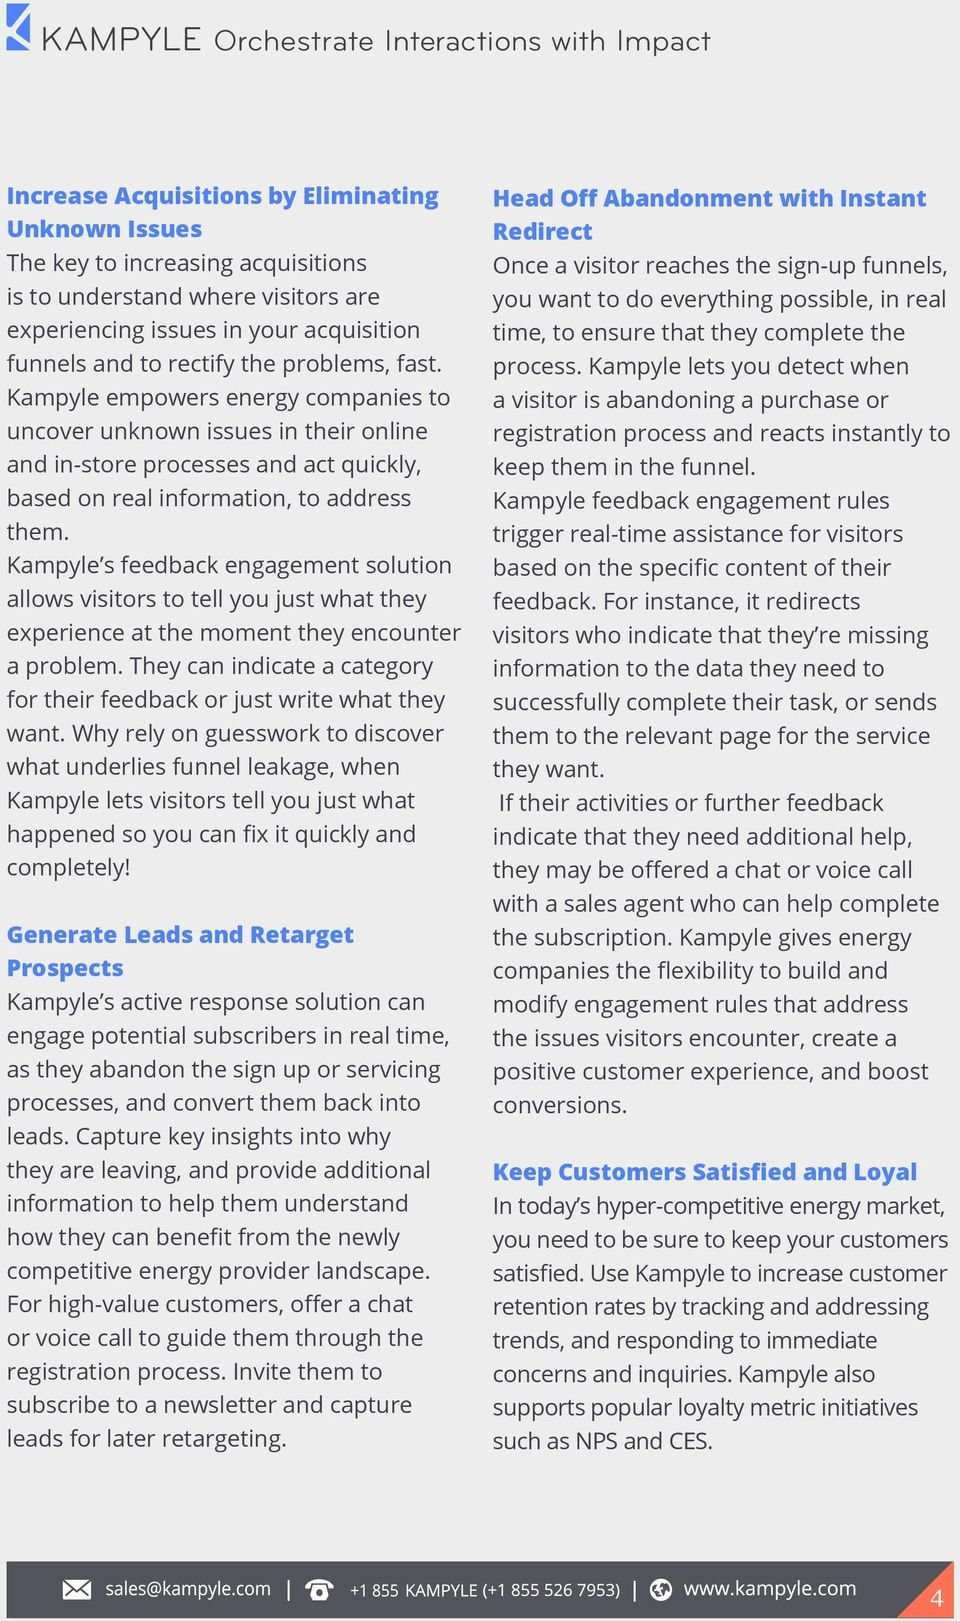 Kampyle s feedback engagement solution allows visitors to tell you just what they experience at the moment they encounter a problem.